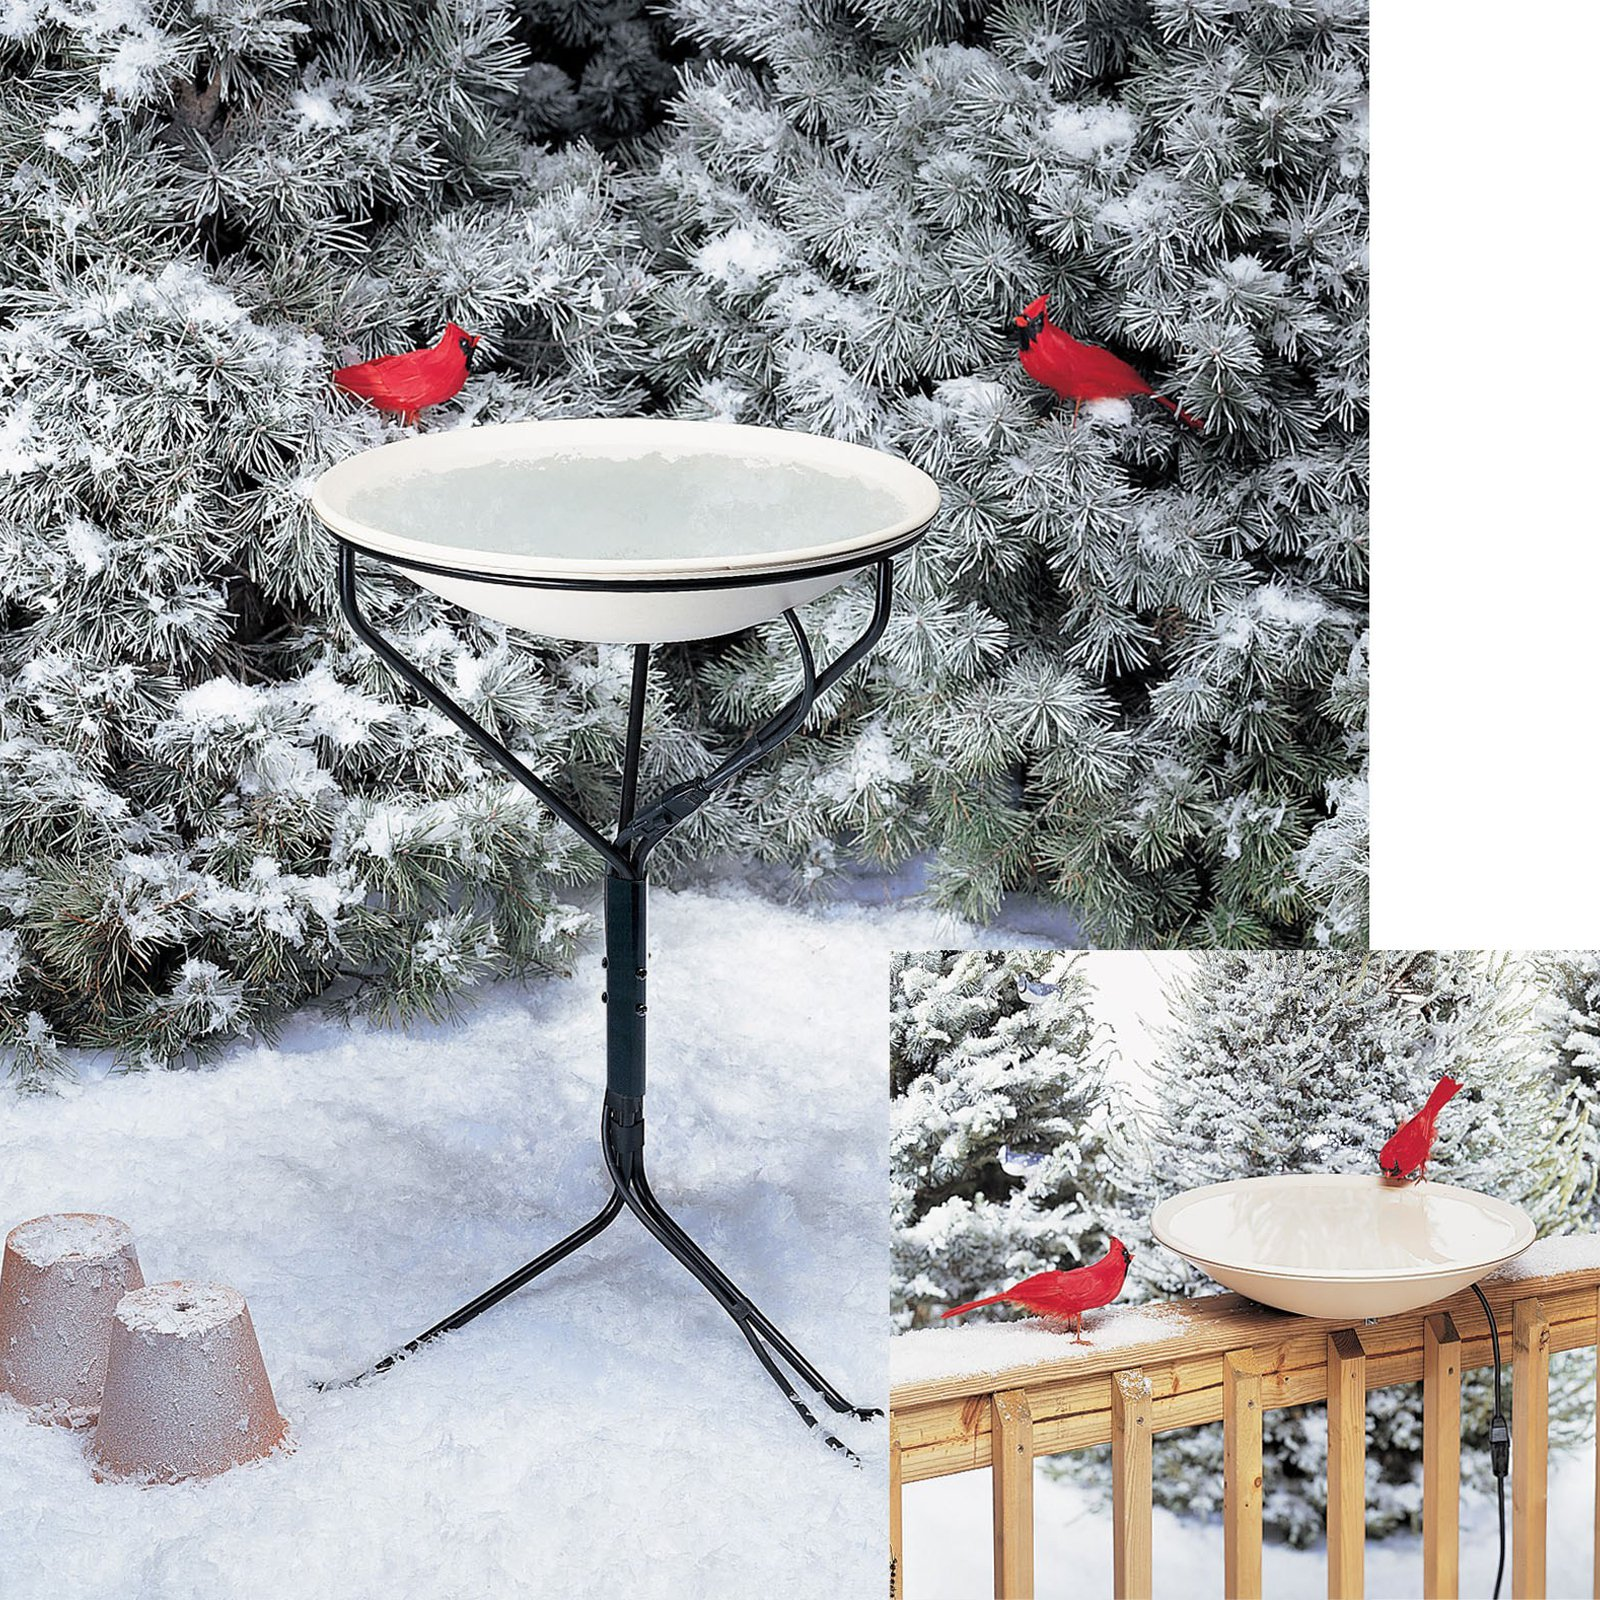 Allied Precision 20 in. Heated Birdbath with Metal Stand by Gold Crest Distributing LLC